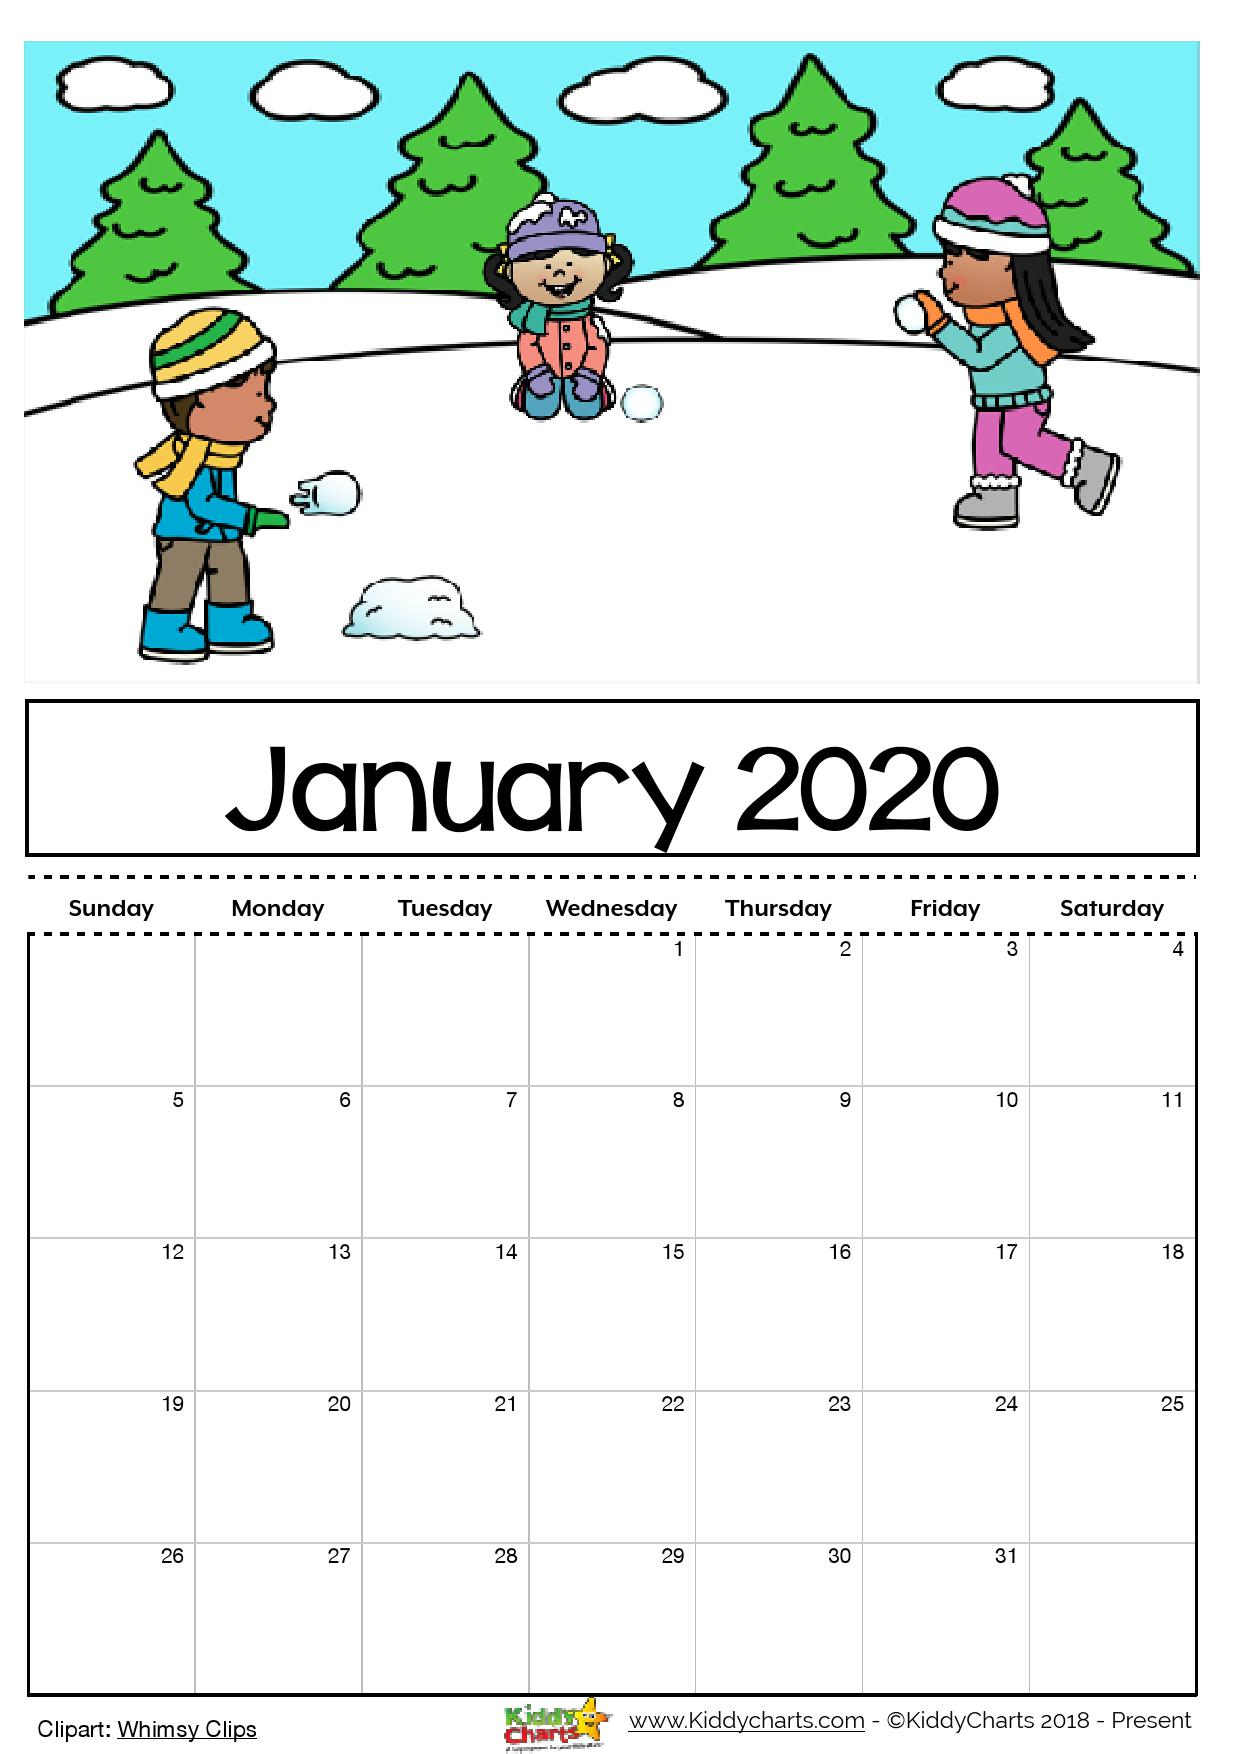 Free Printable 2020 Calendar For Kids, Including An Editable Version throughout Printable 2020 Calendar I Can Edit